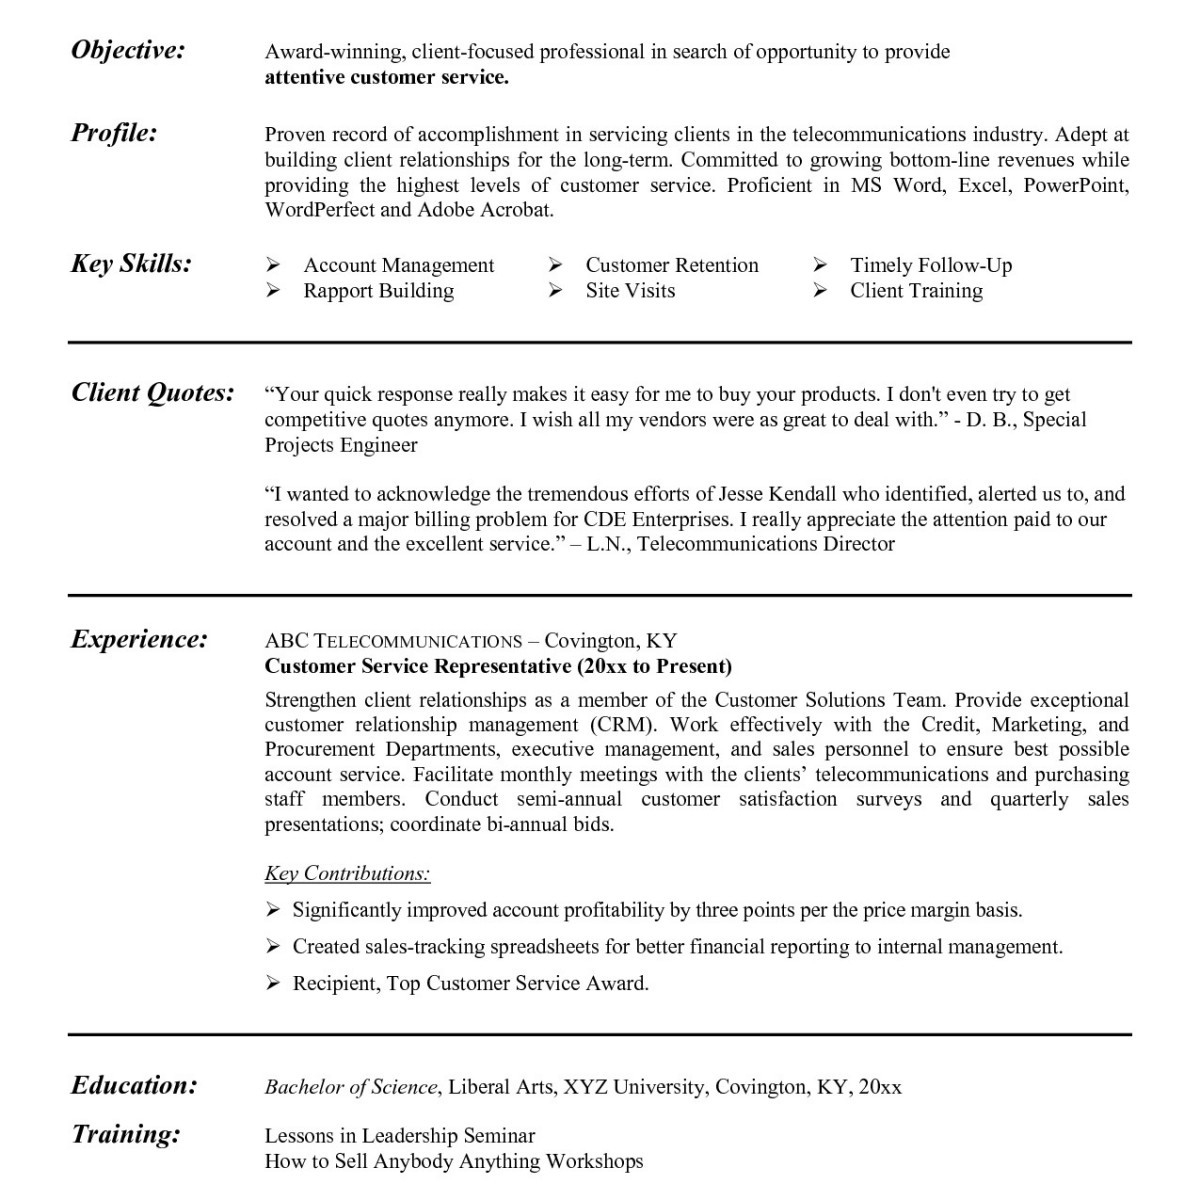 Chrono Functional Resume Template - 40 Wonderful Chrono Functional Resume Template Graph A9k